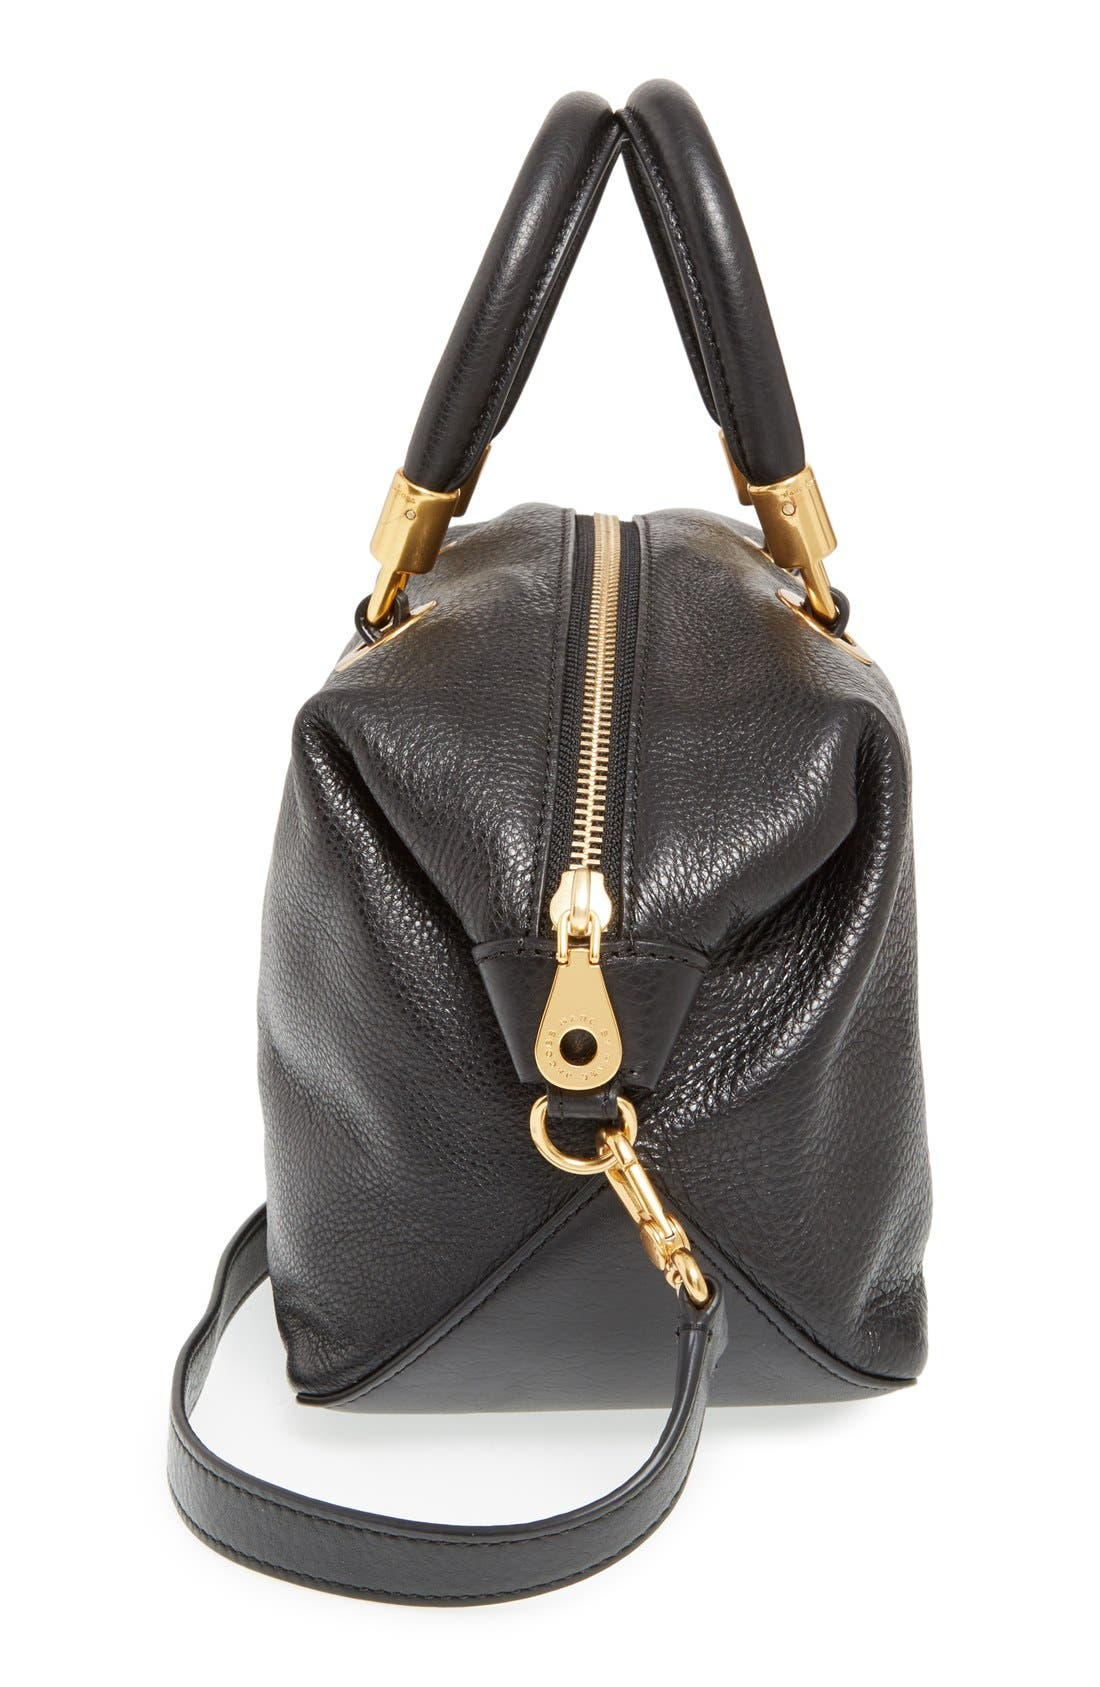 MARC JACOBS, MARC BY MARC JACOBS 'New Too Hot to Handle' Leather Satchel, Alternate thumbnail 4, color, 001